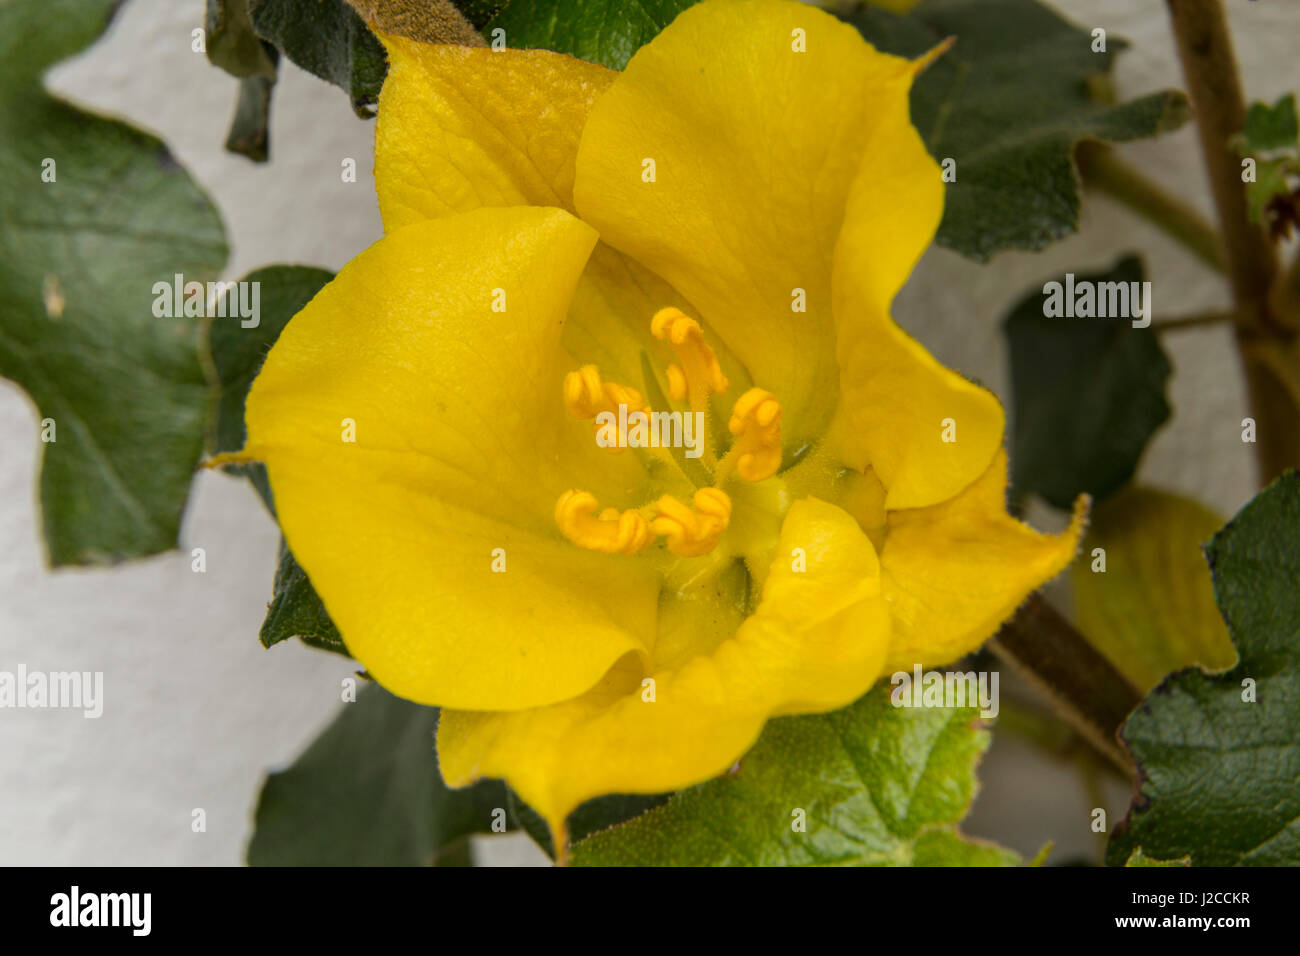 Fremontodendron California Glory growing and flowering up a white house wall in Devon.flower - Stock Image